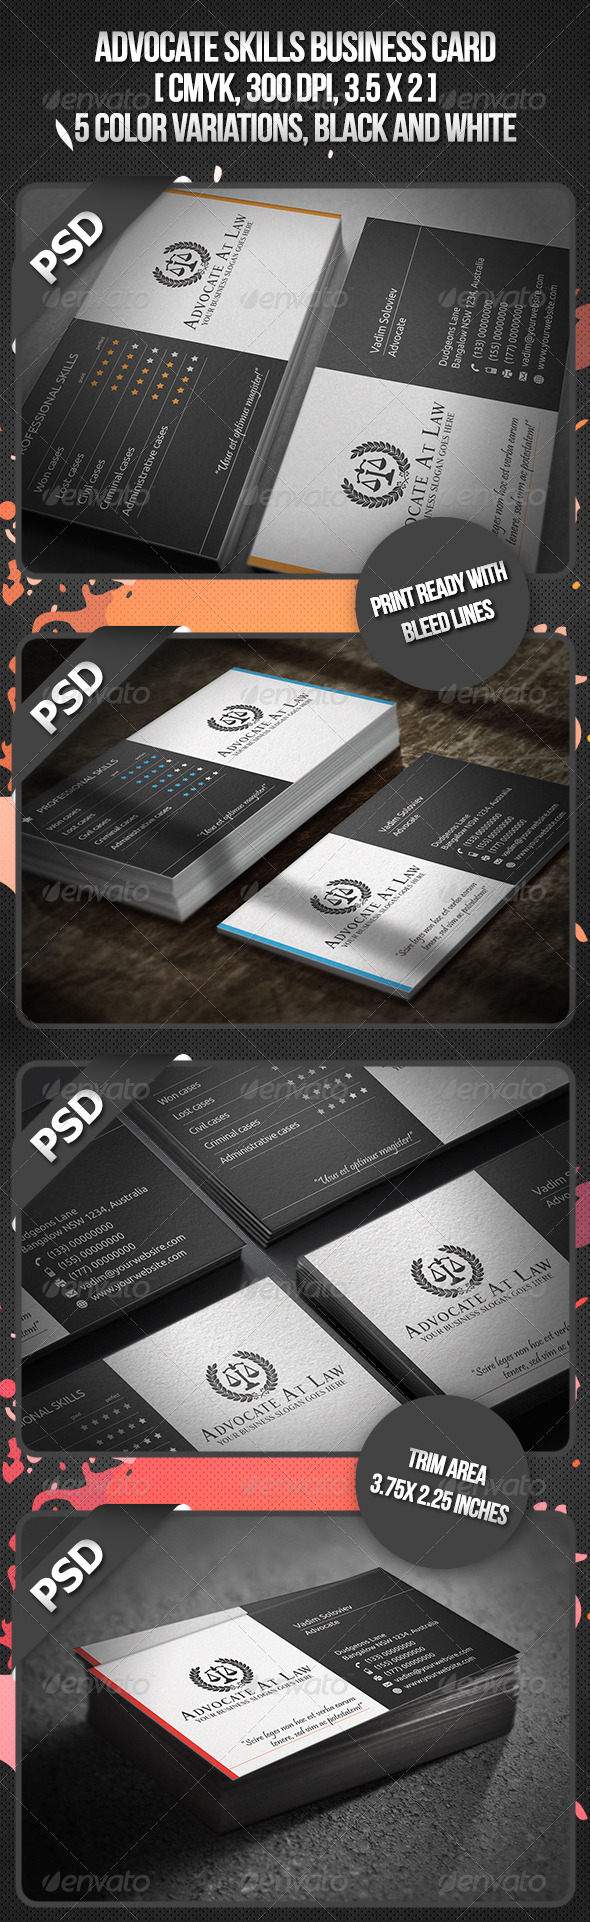 Advocate Skills Business Card - Industry Specific Business Cards